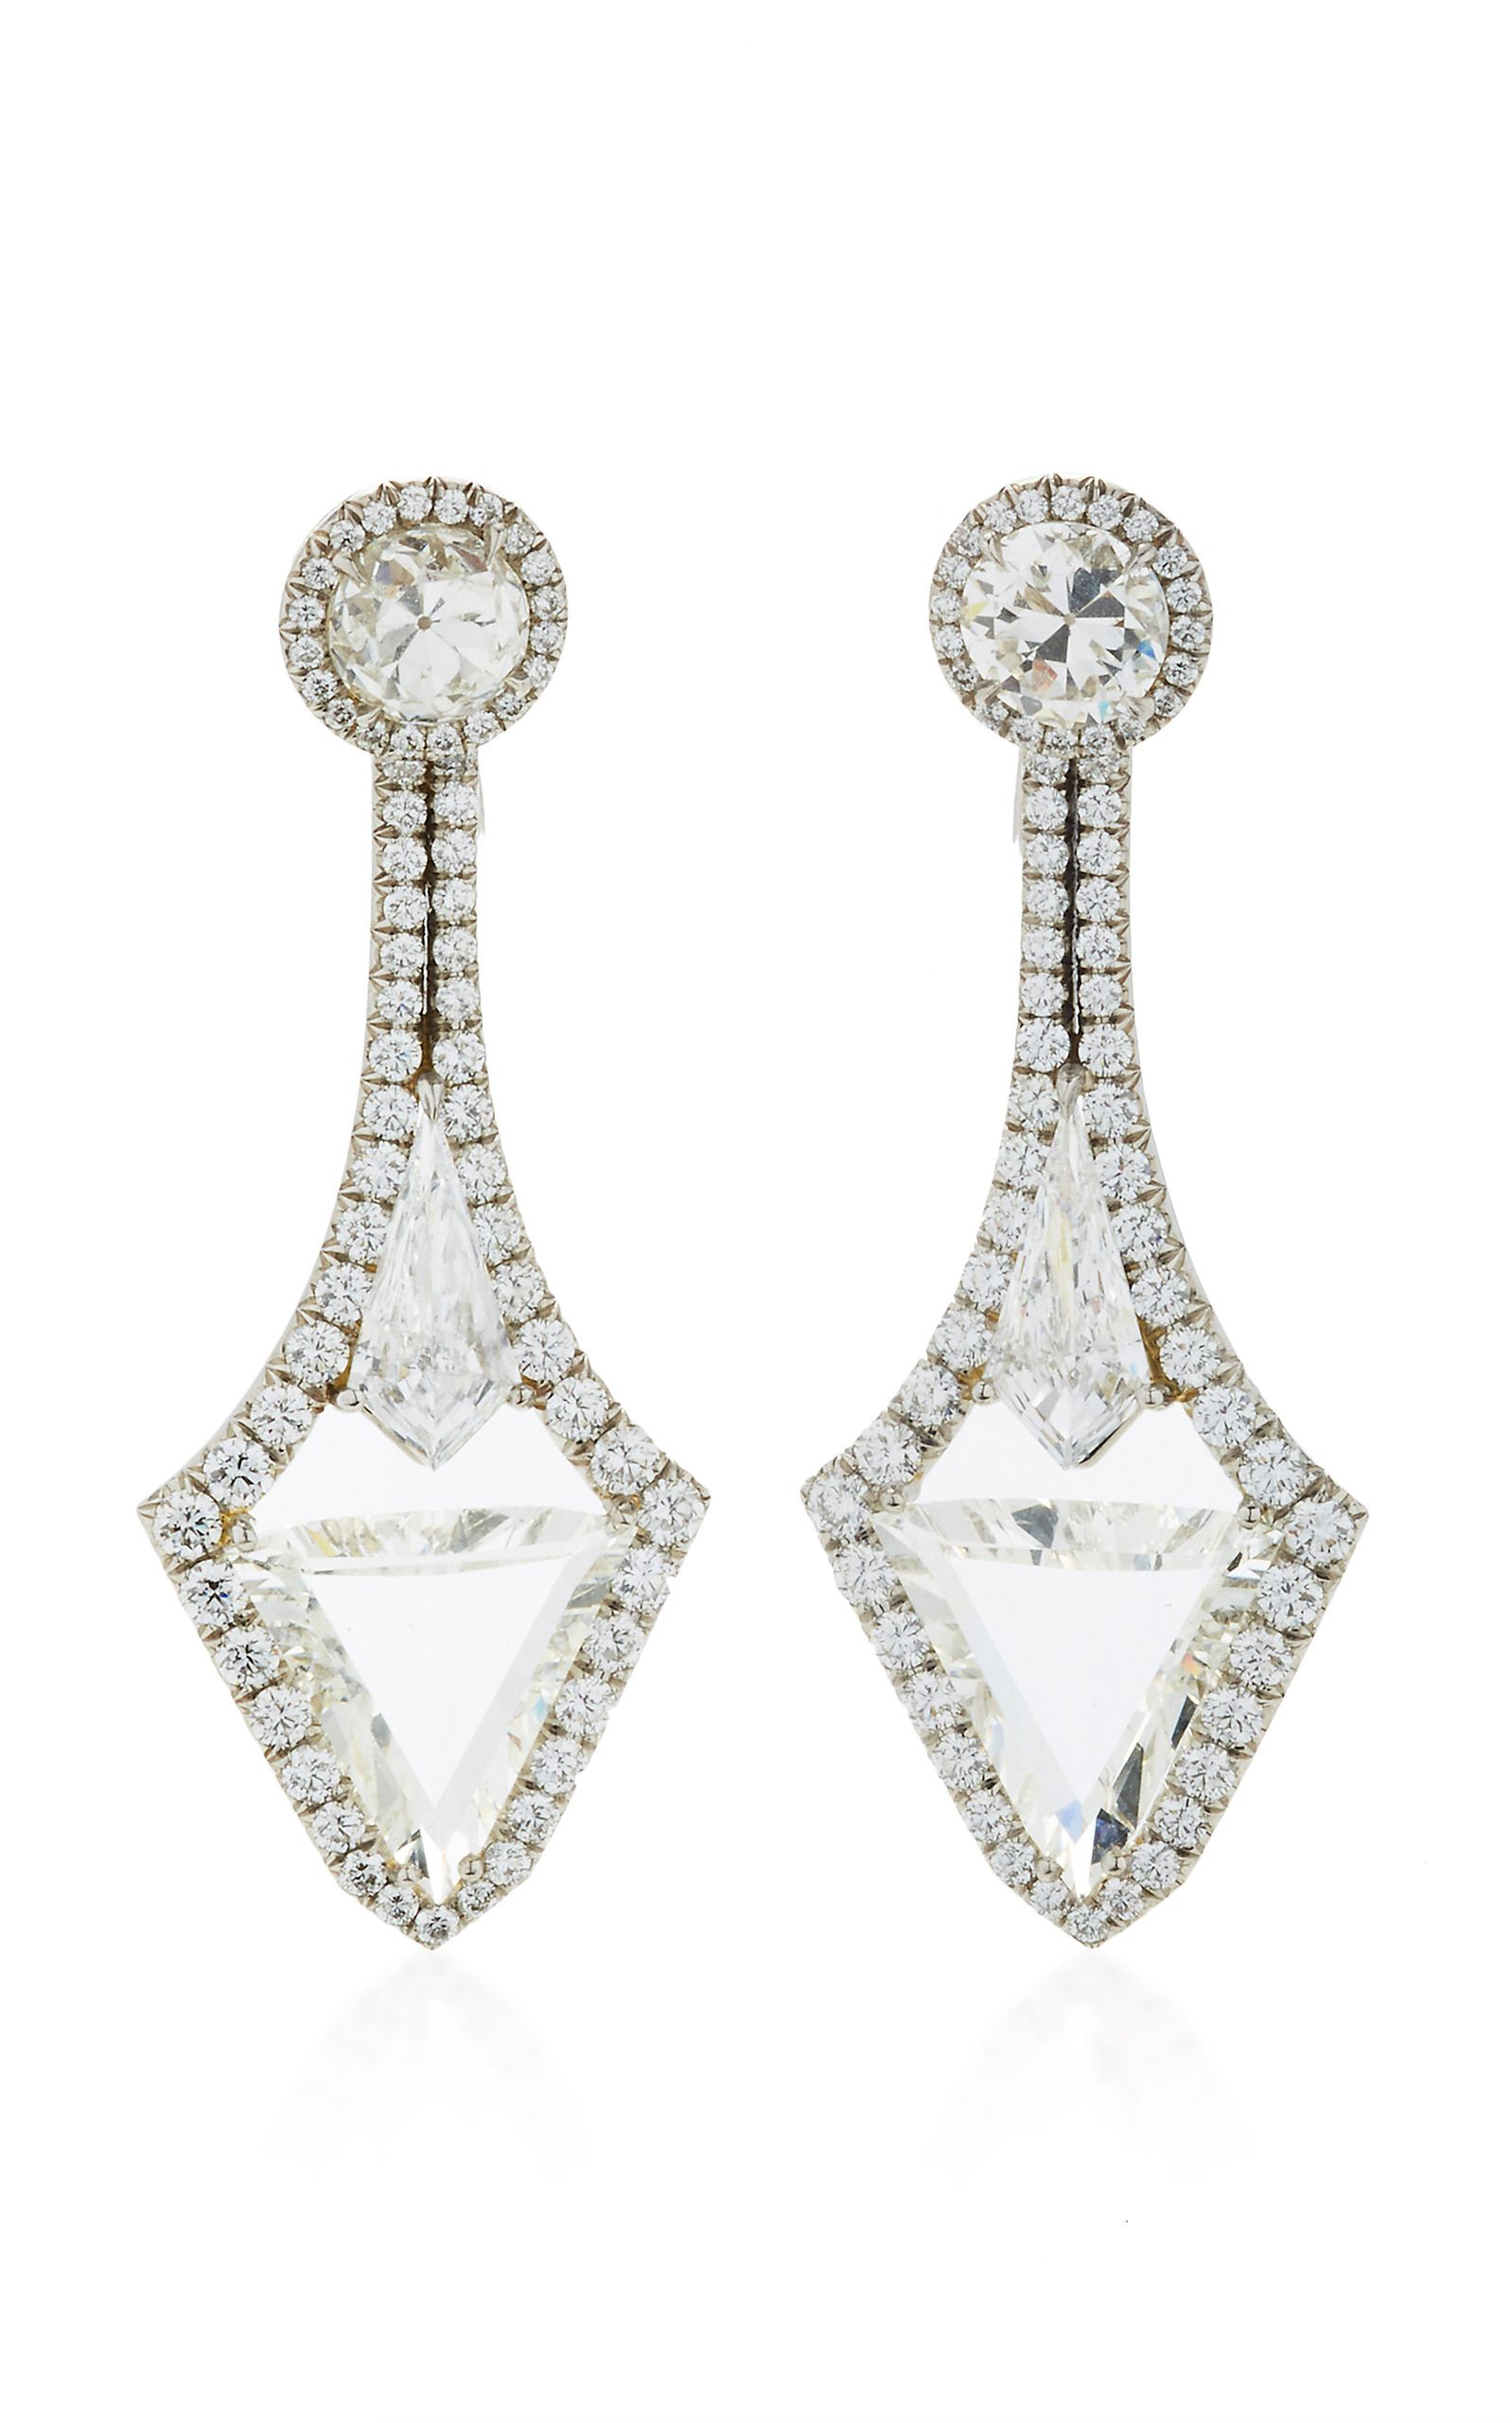 vanrycke diamond king product earring white one earrings single modesens